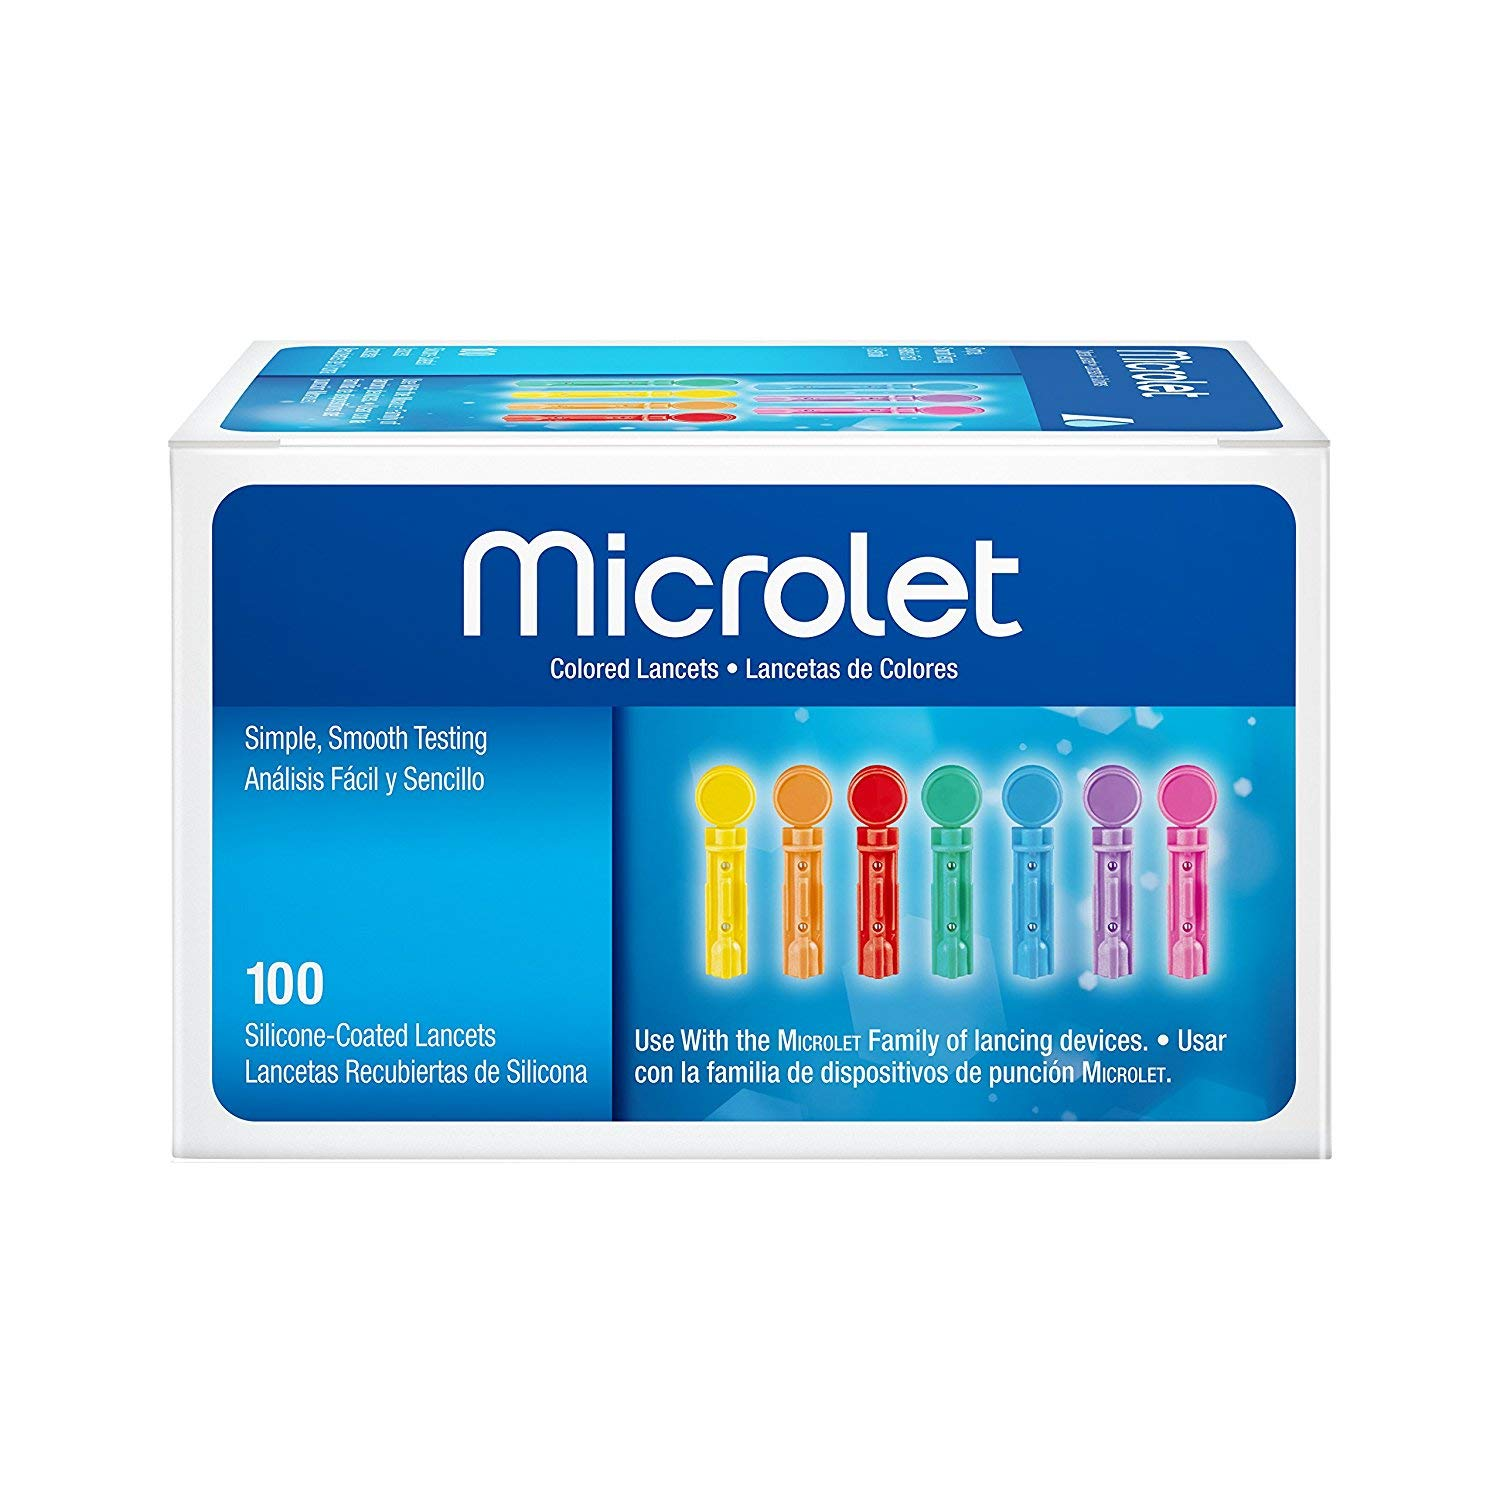 Bayer Microlet Colored Lancets, Silicon Coated - 100 ct, Pack of 5 by Microlet